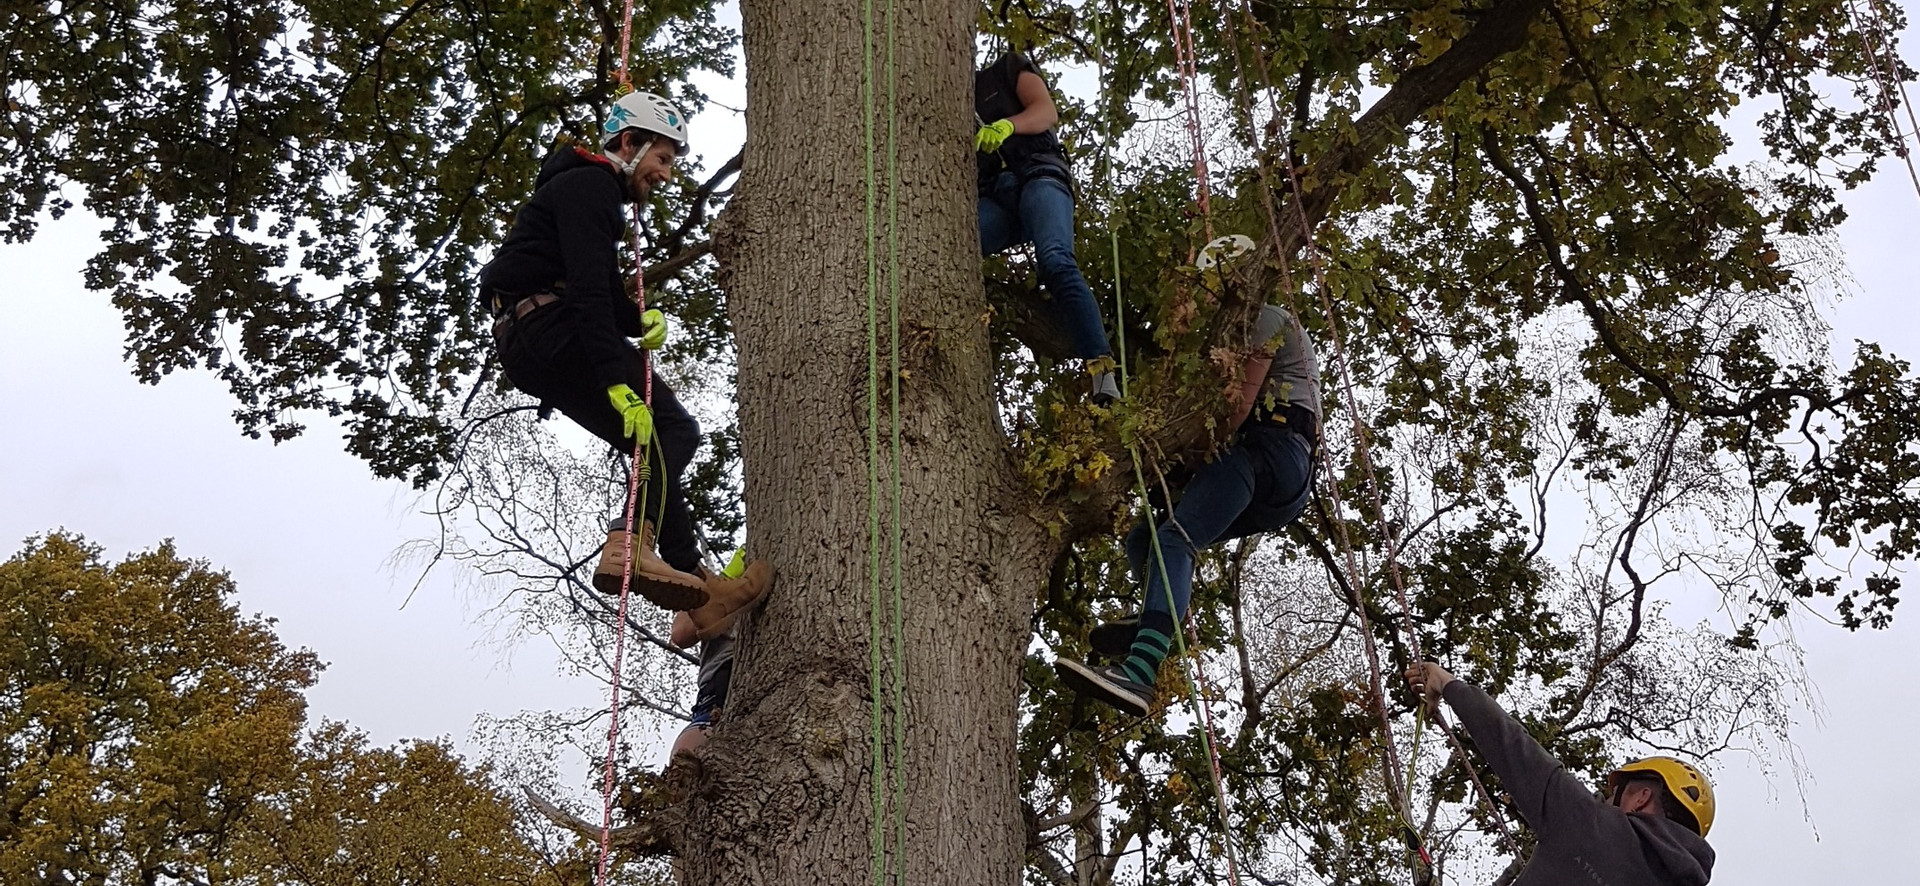 Canopy - Tree climbing promotes team building